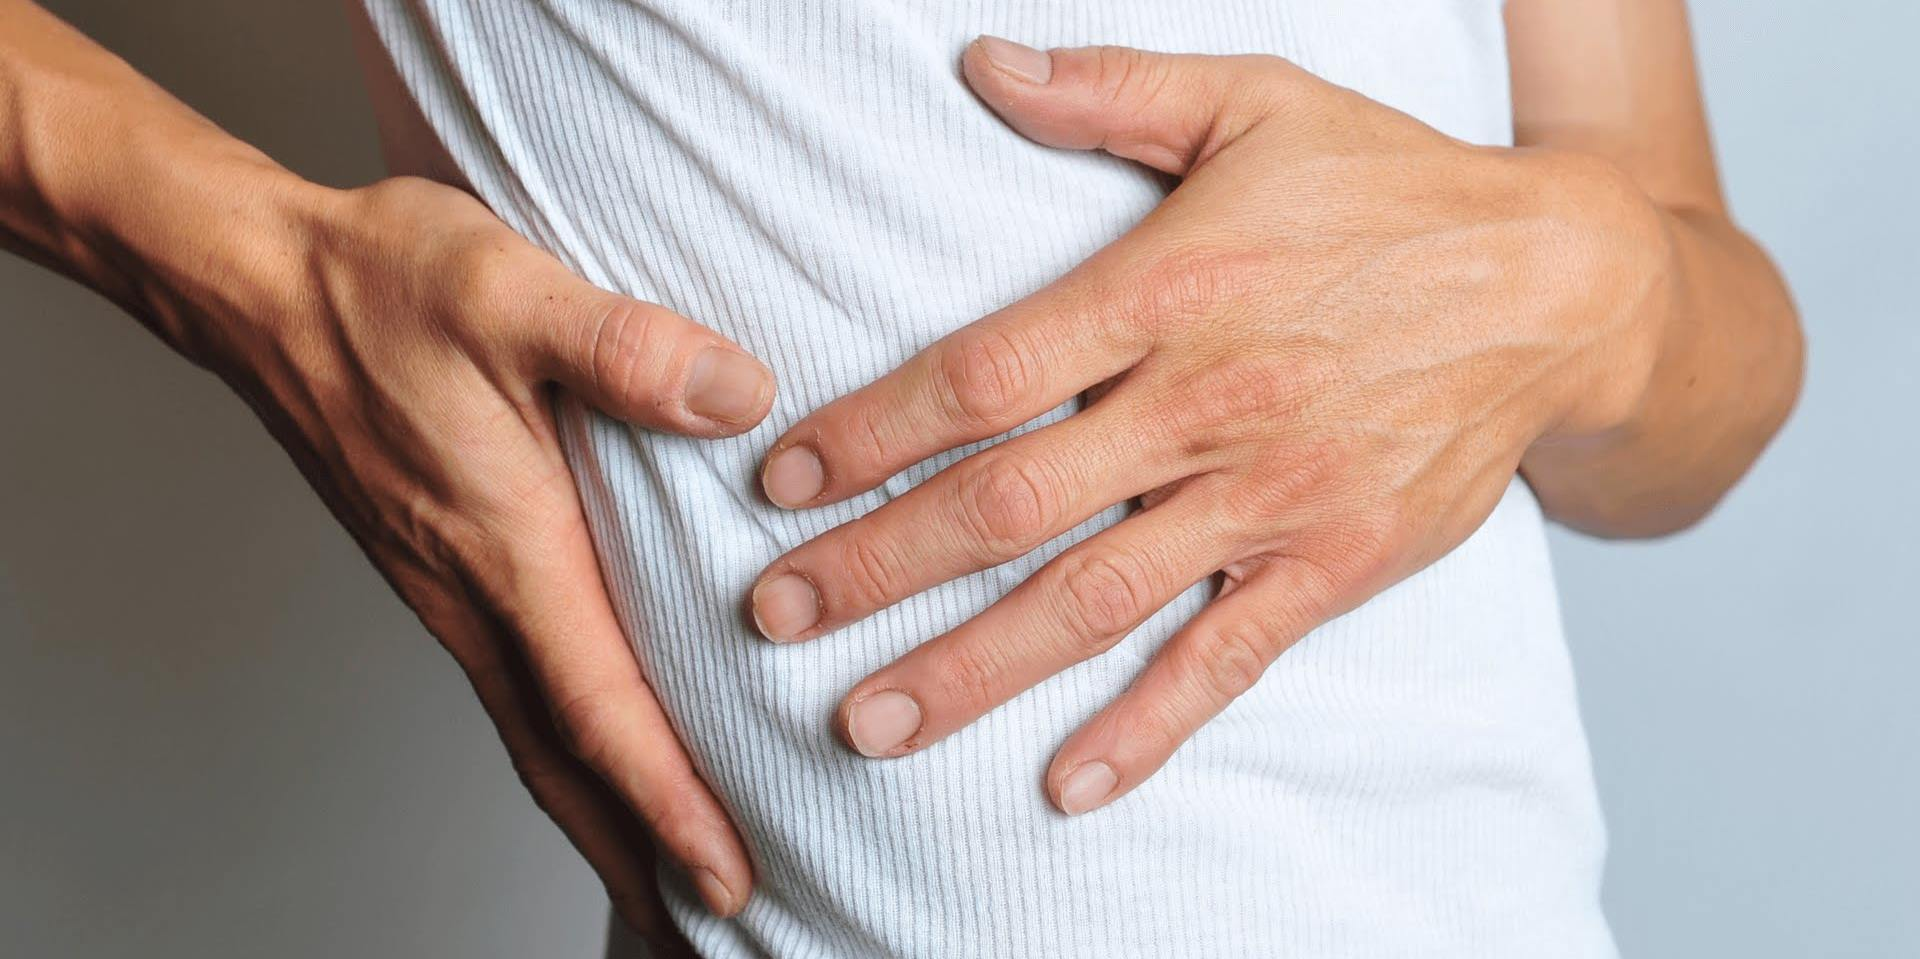 Bruised Ribs symptoms and causes